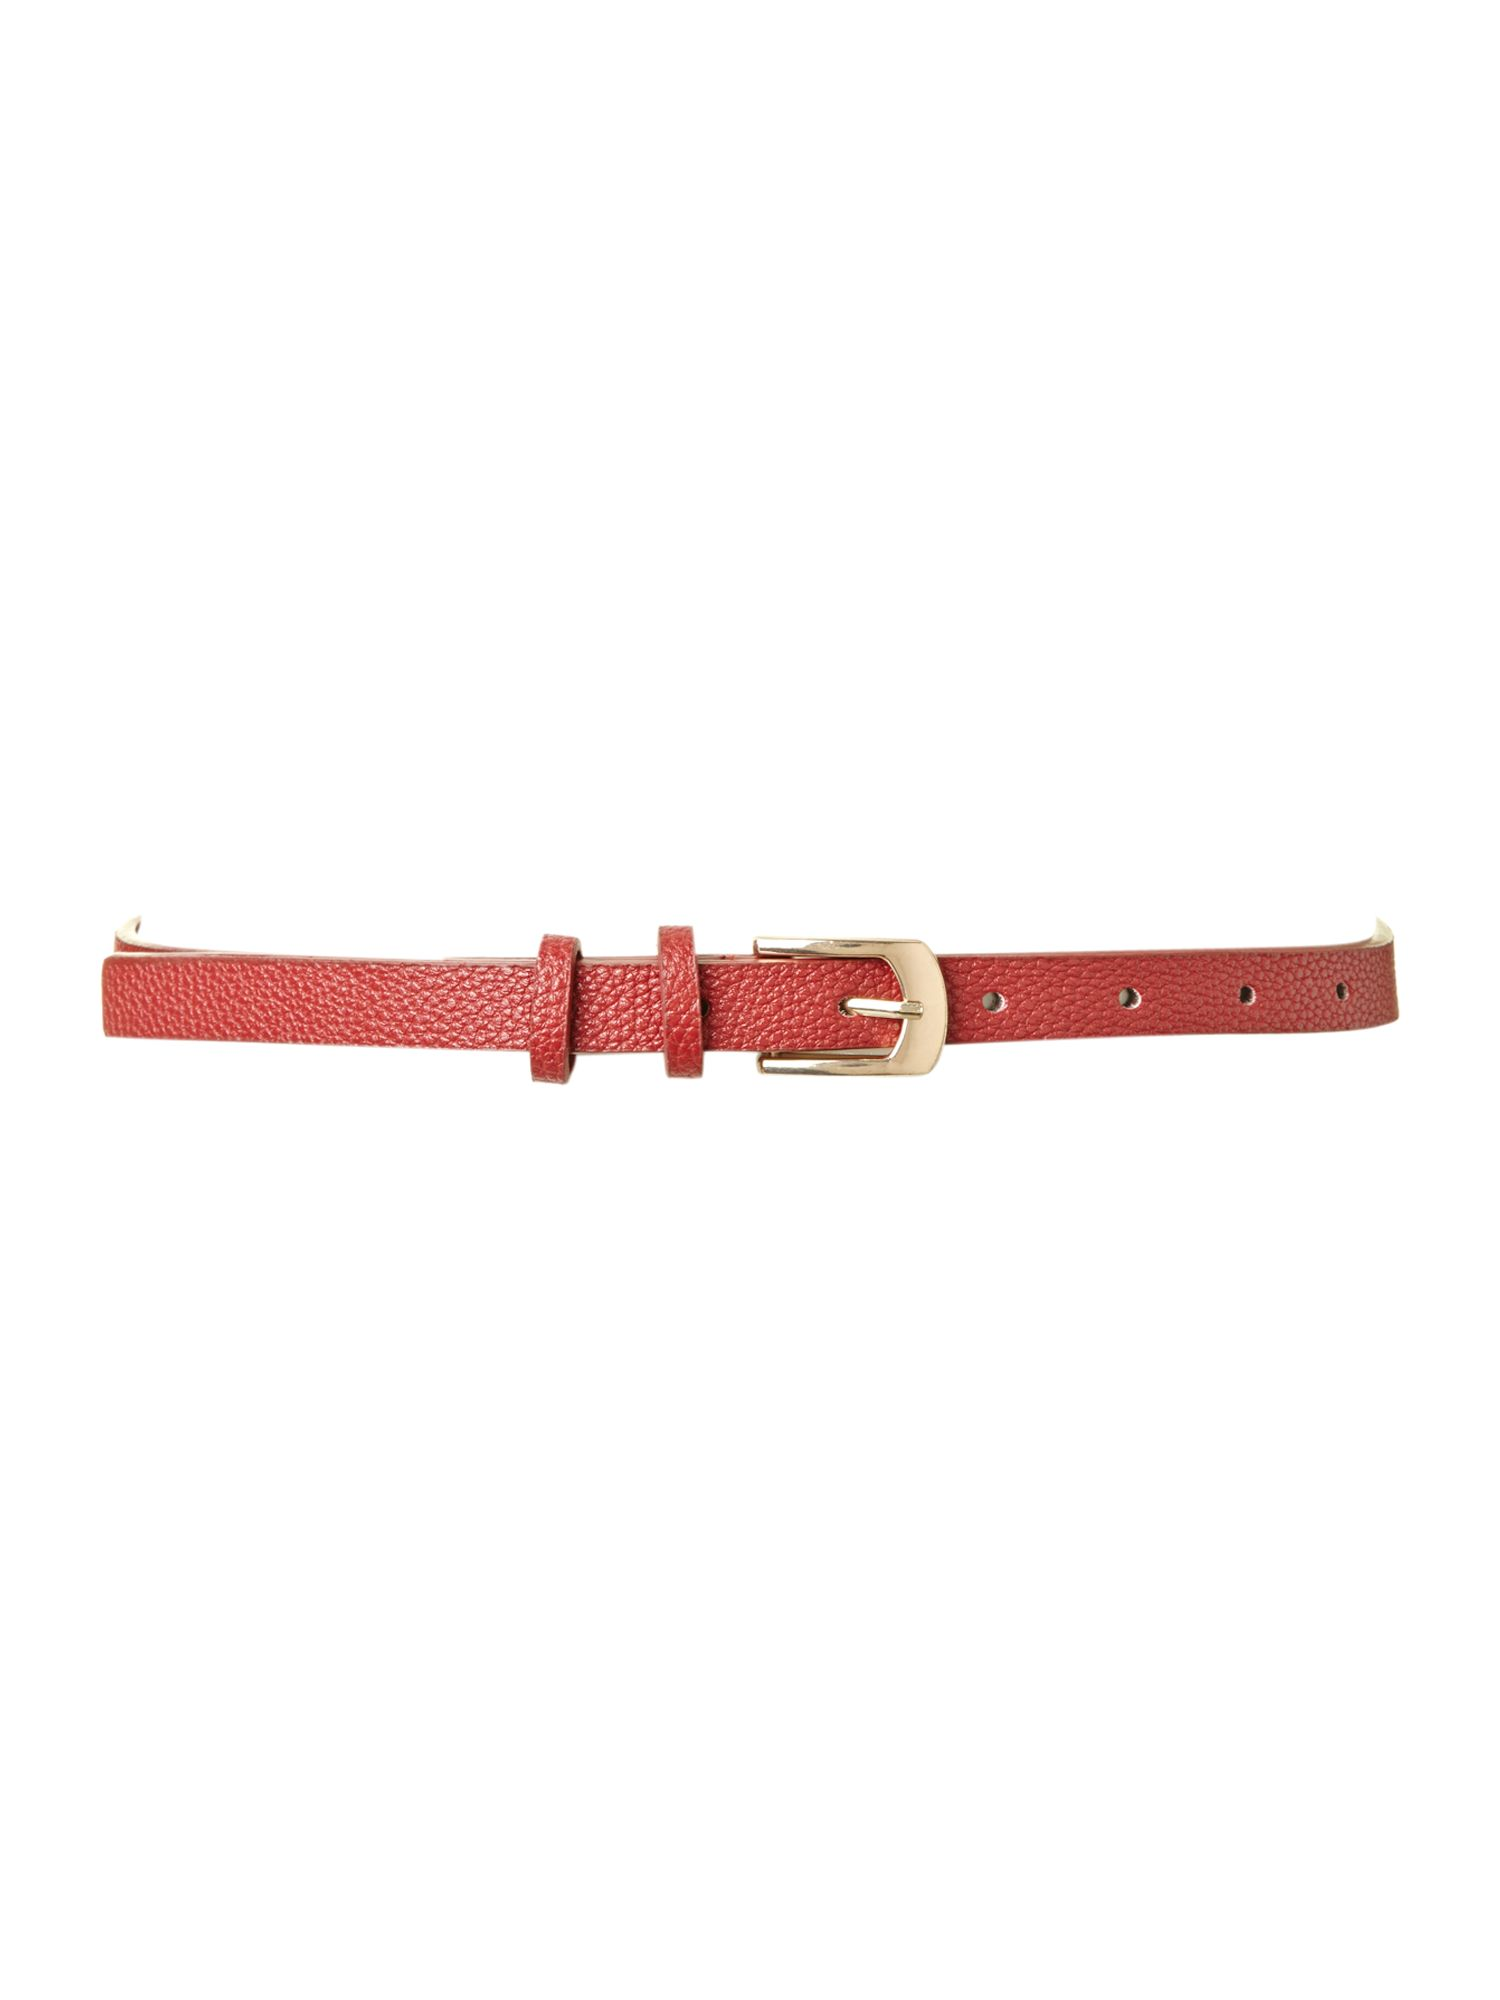 Simple skinny trouser belt